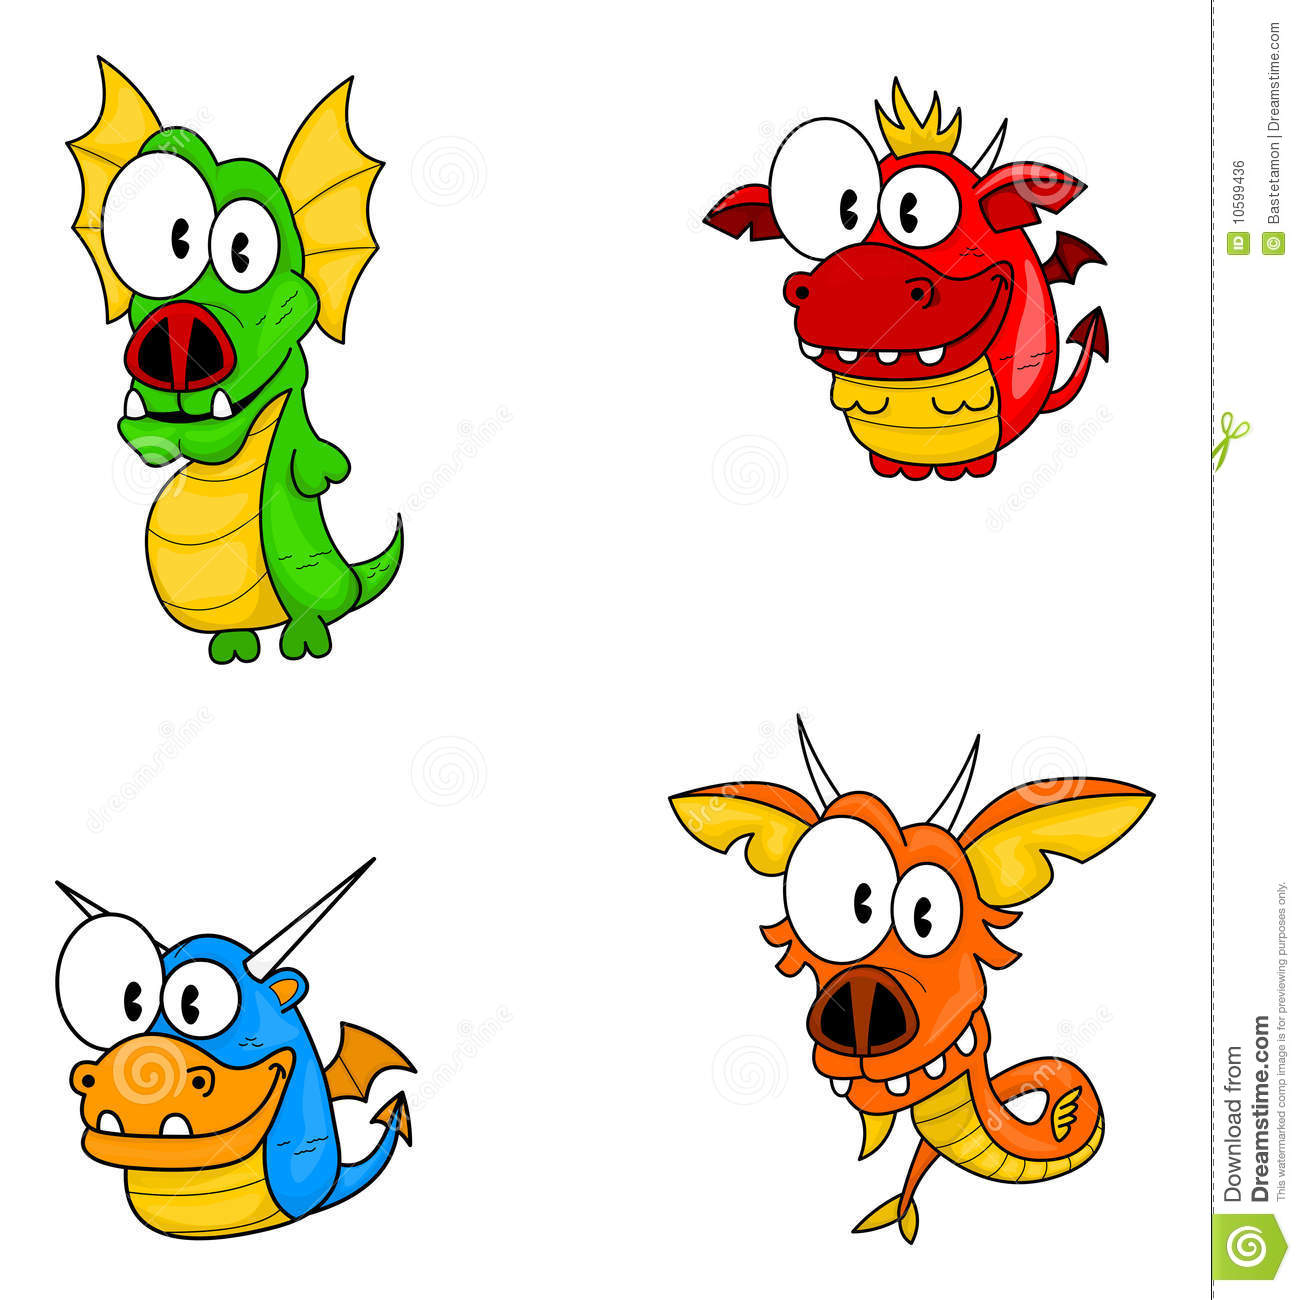 Cartoon Dragons Royalty Free Stock Image - Image: 10599436